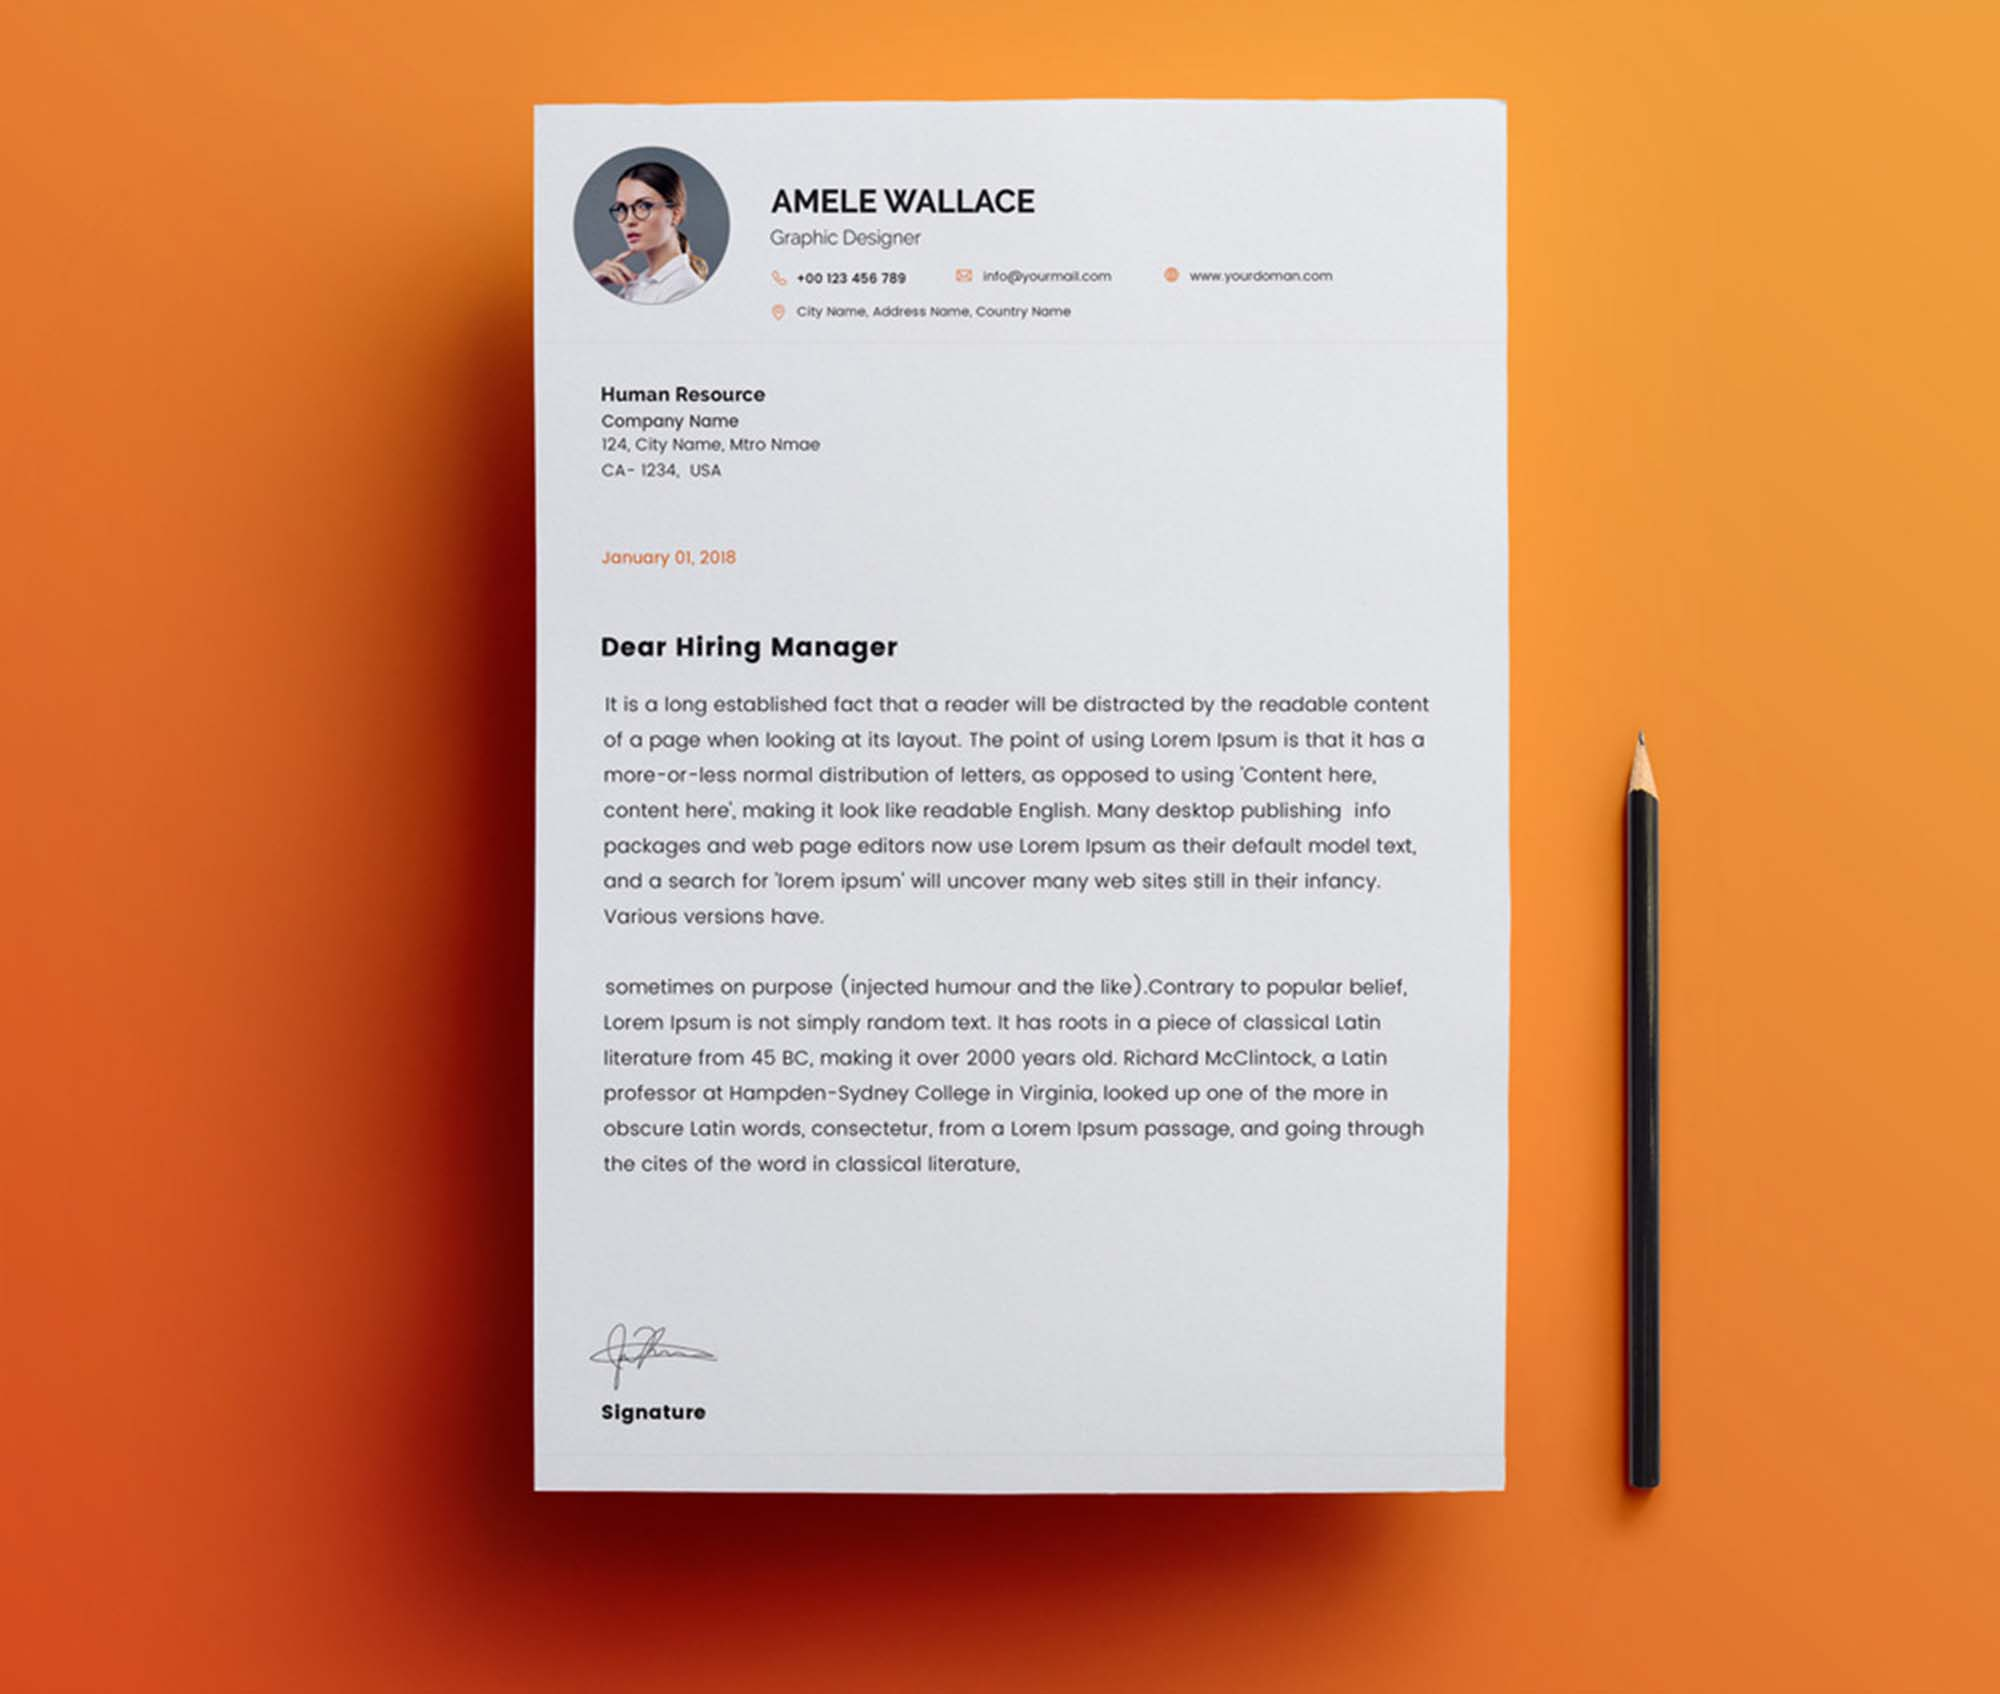 Online Graphic Designer Cover Letter Free Smart Resume Cv With Cover Letter